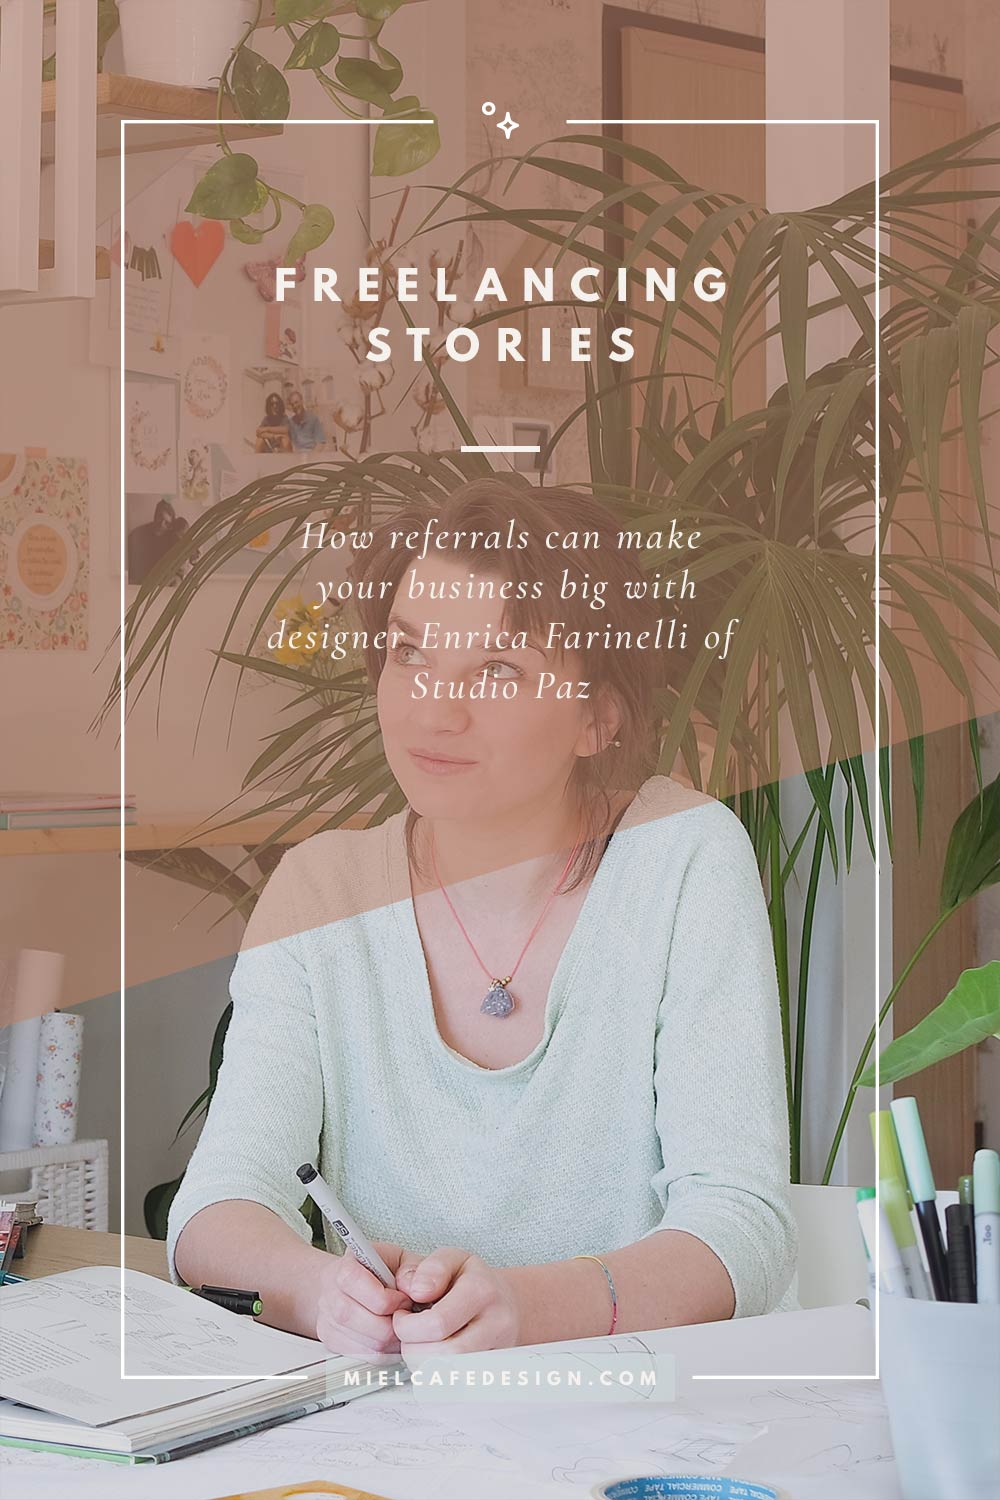 Freelancing Stories: How Referrals Can Make Your Business Big with interior and graphic designer Enrica Farinelli of Studio Paz